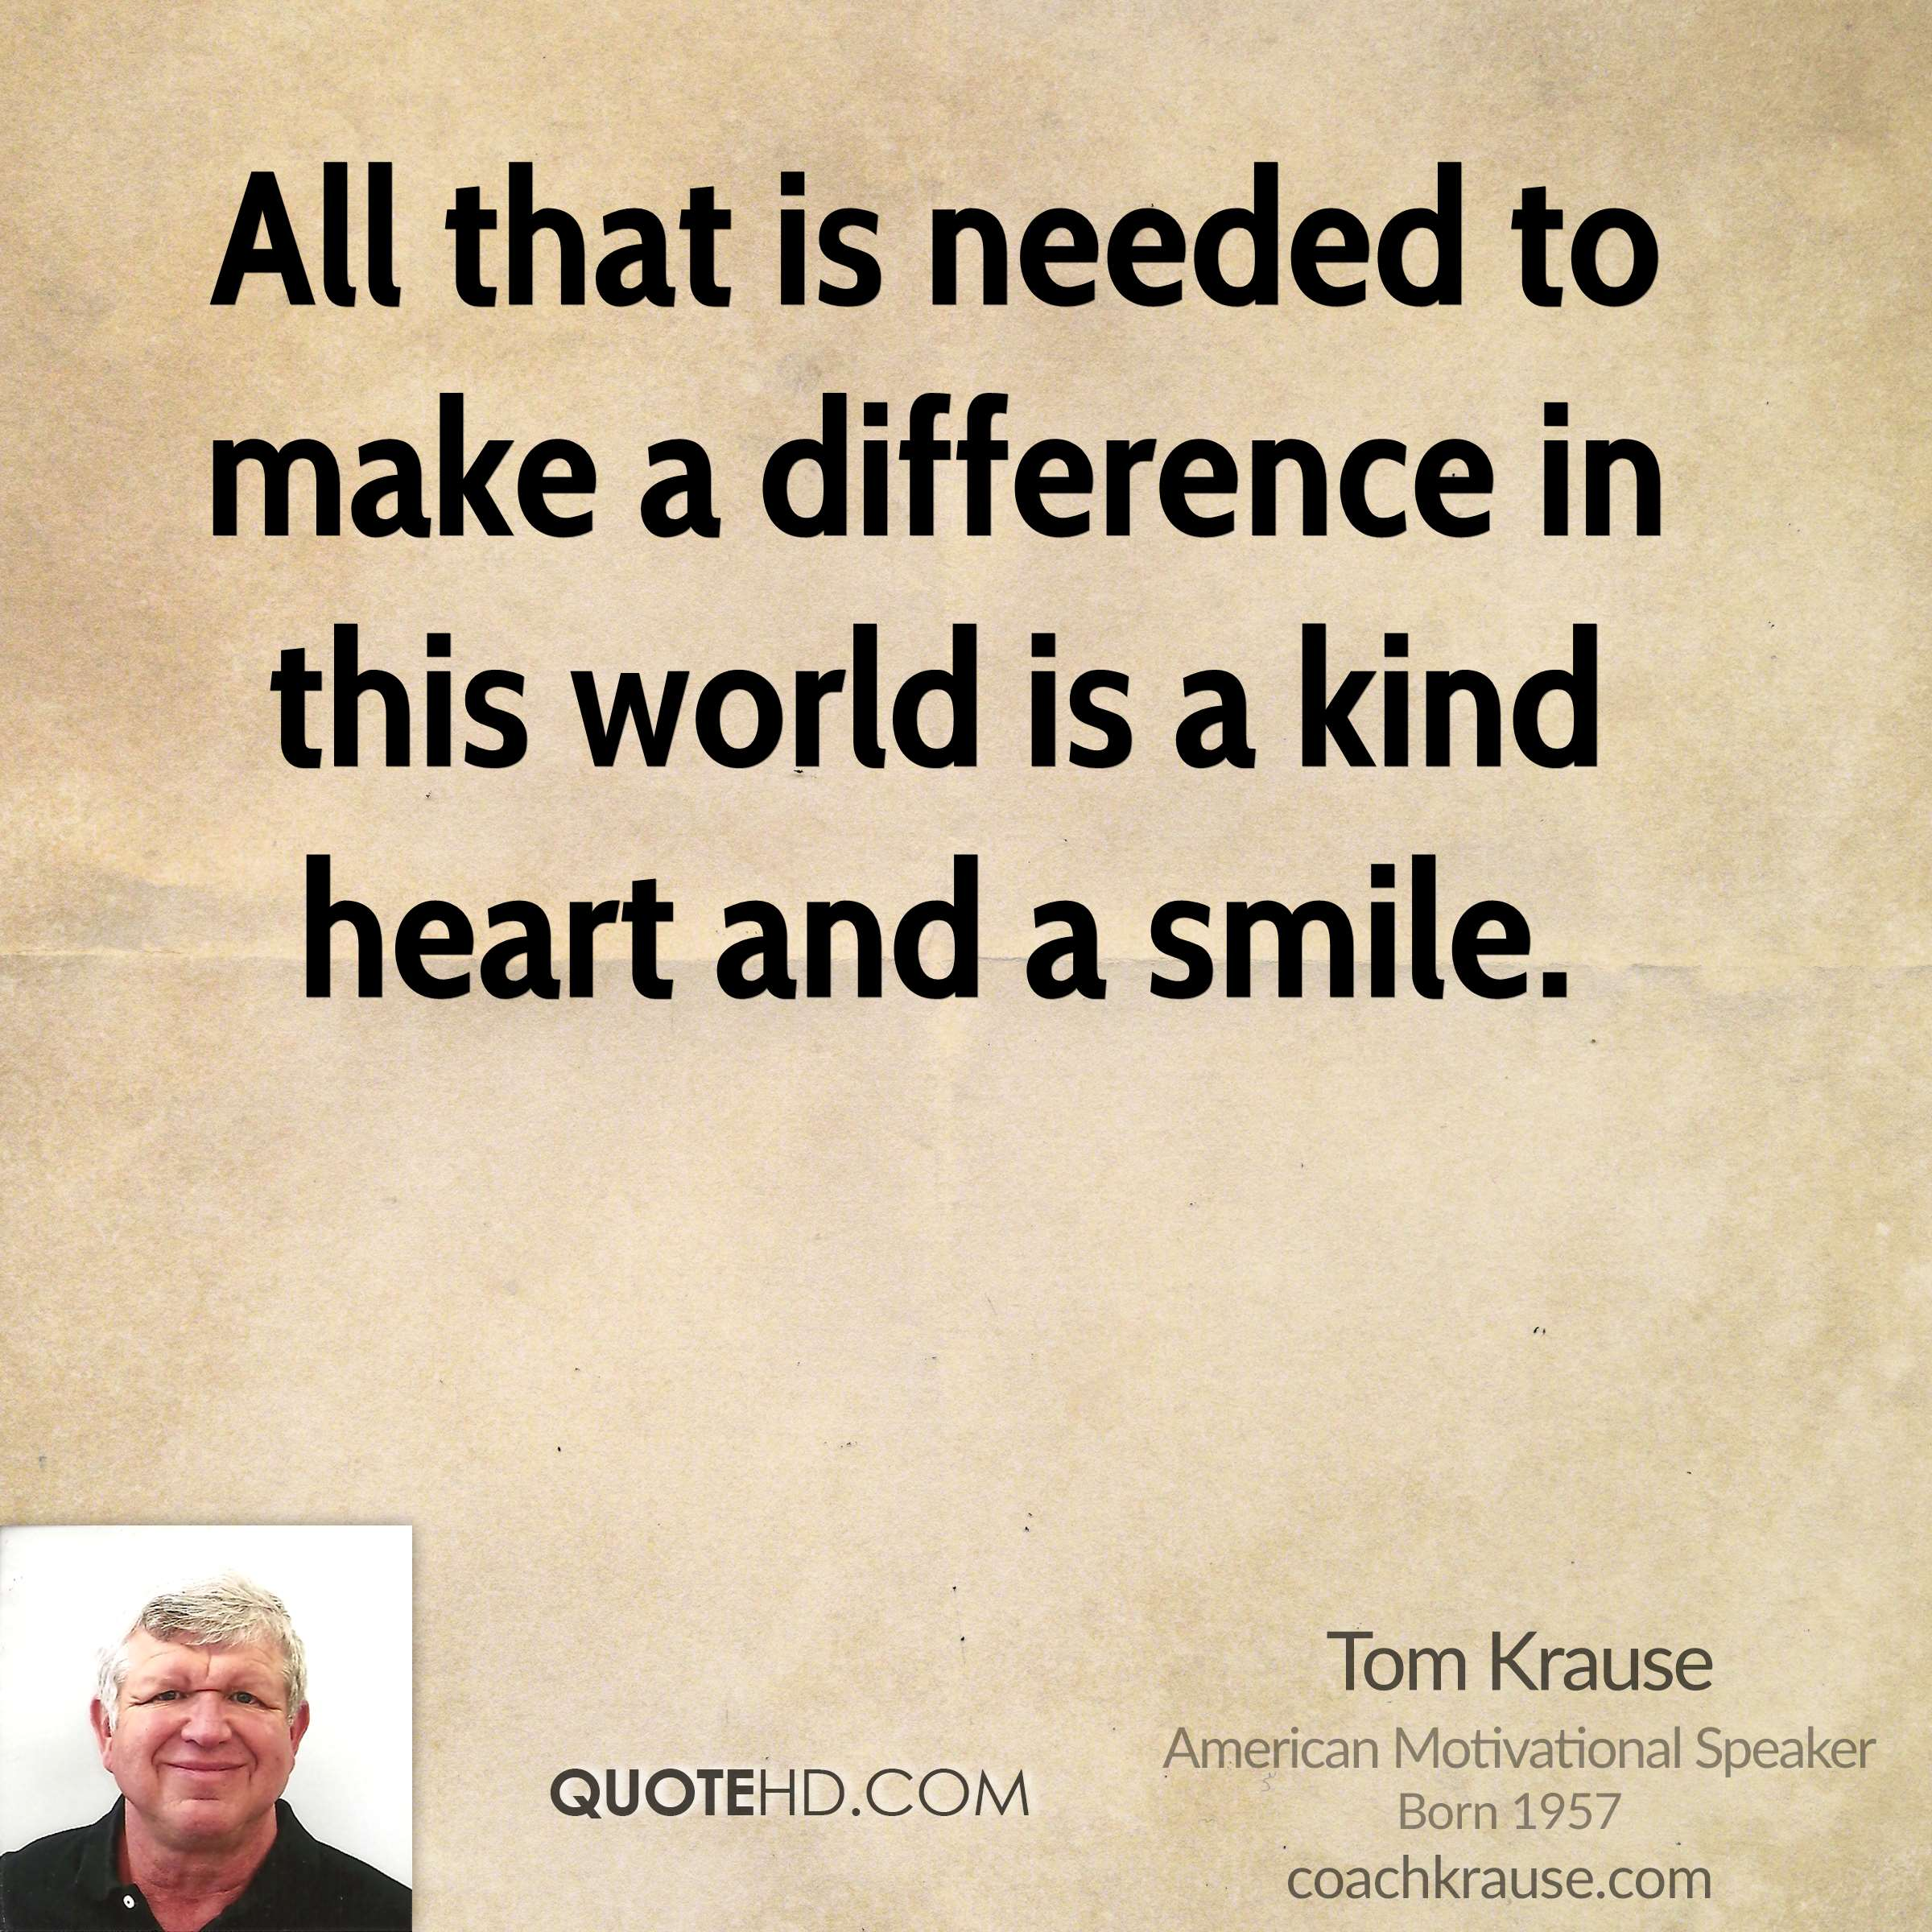 All that is needed to make a difference in this world is a kind heart and a smile.